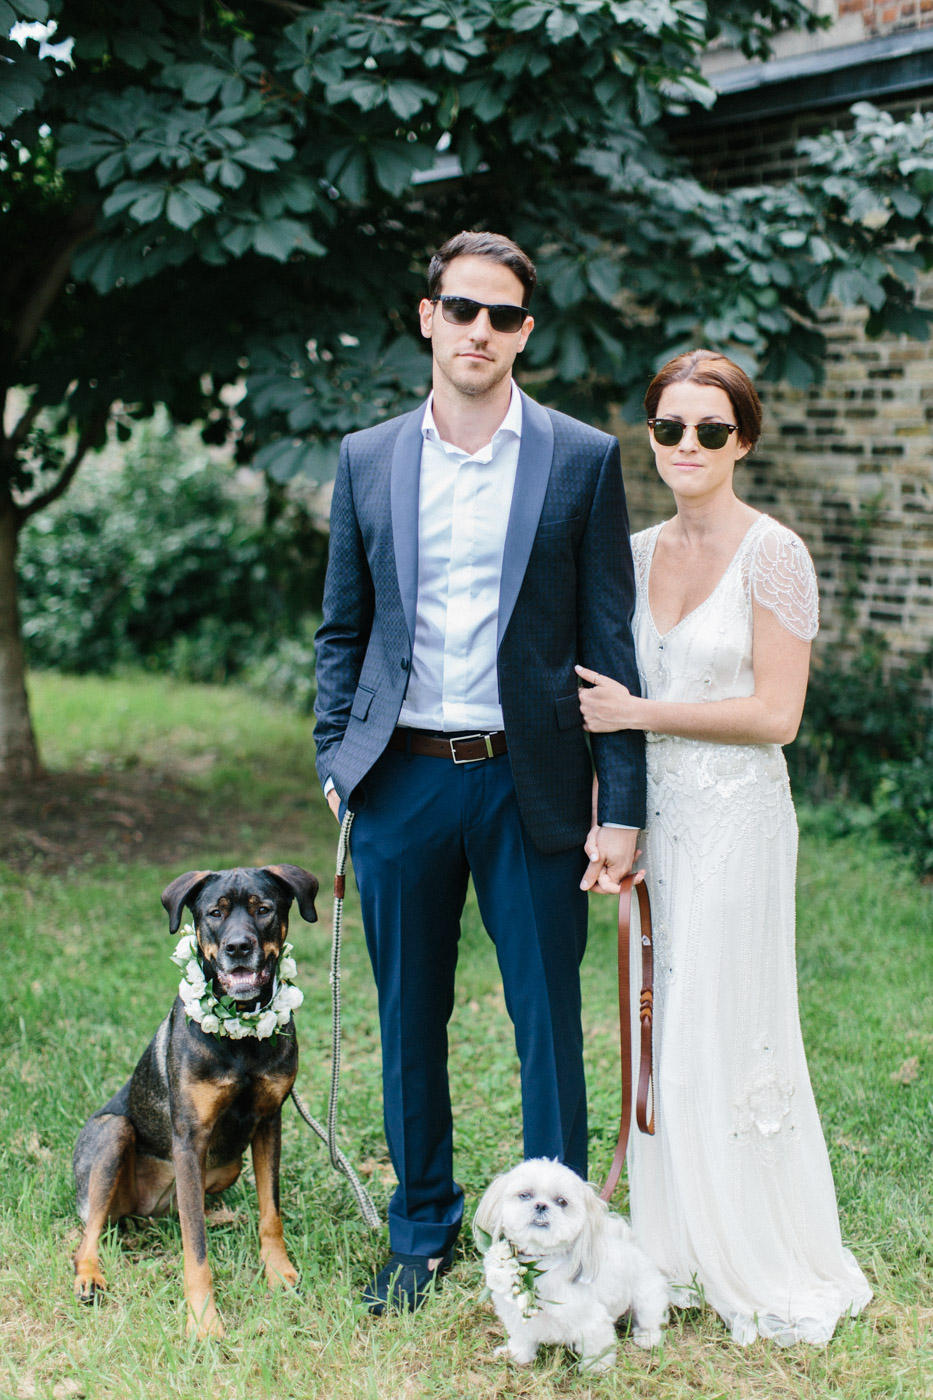 Include_dogs_in_your_wedding_photographs8.jpg